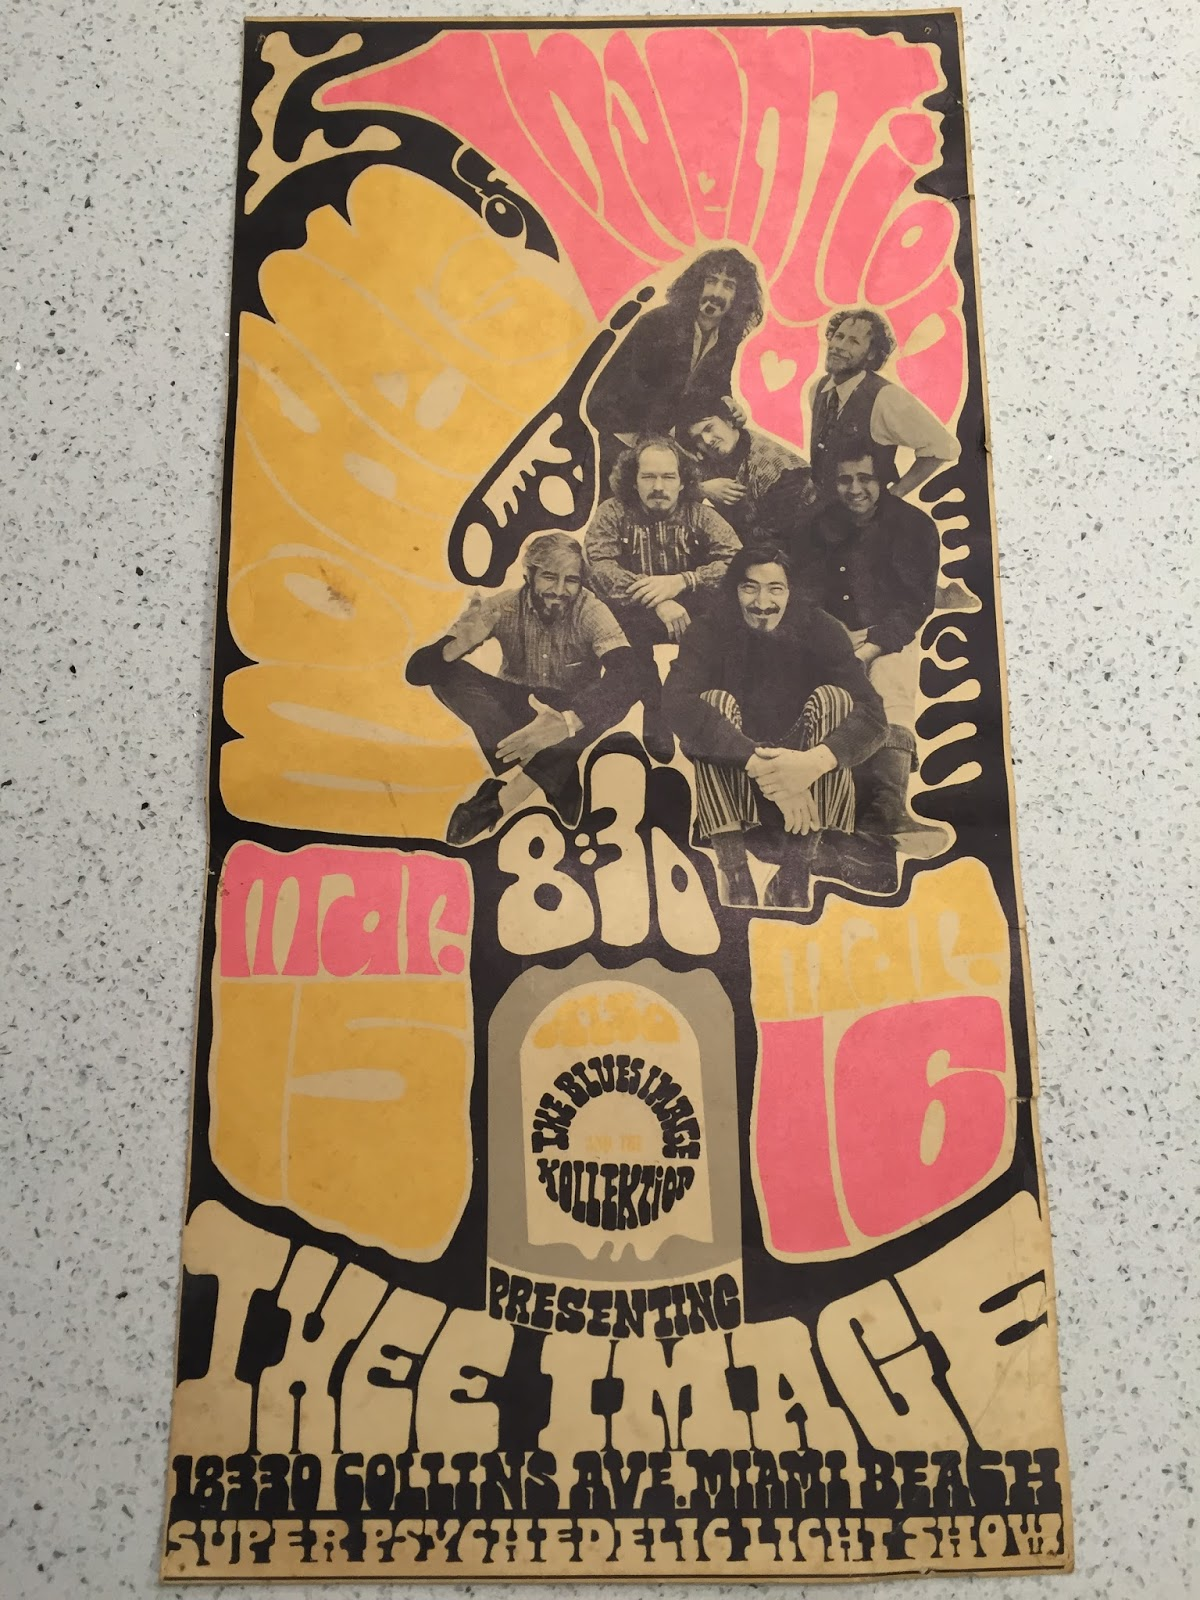 2fc6df7f311 Correspondent Ryan sent in a scan of the poster for the first concert at  Thee Image, The Mothers of Invention on March 15-16, 1968